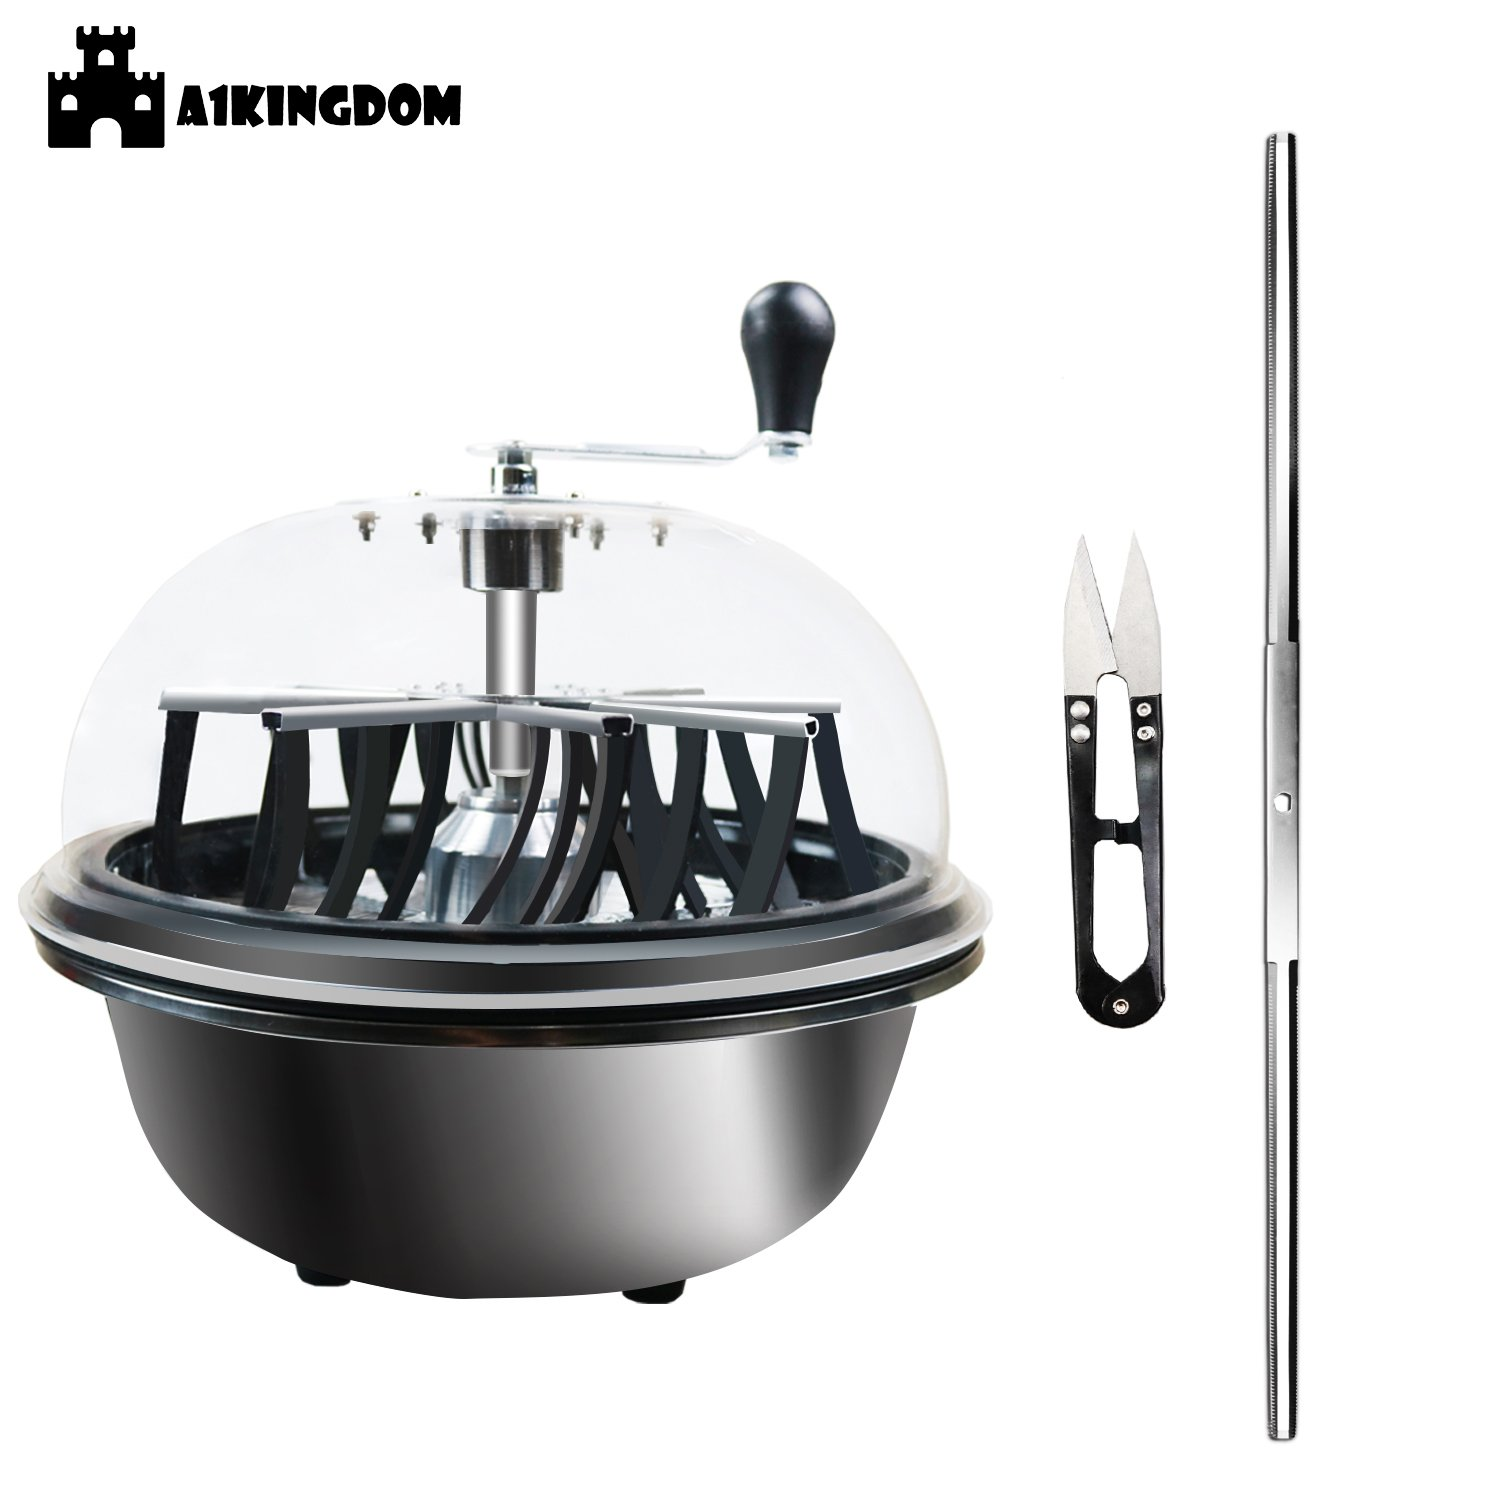 A1KINGDOM 16-inch Hydroponic Leaf Bowl Bud Trimmer Hand Twisted Spin Cut for Plant Herb and Flower with Upgraded Gears